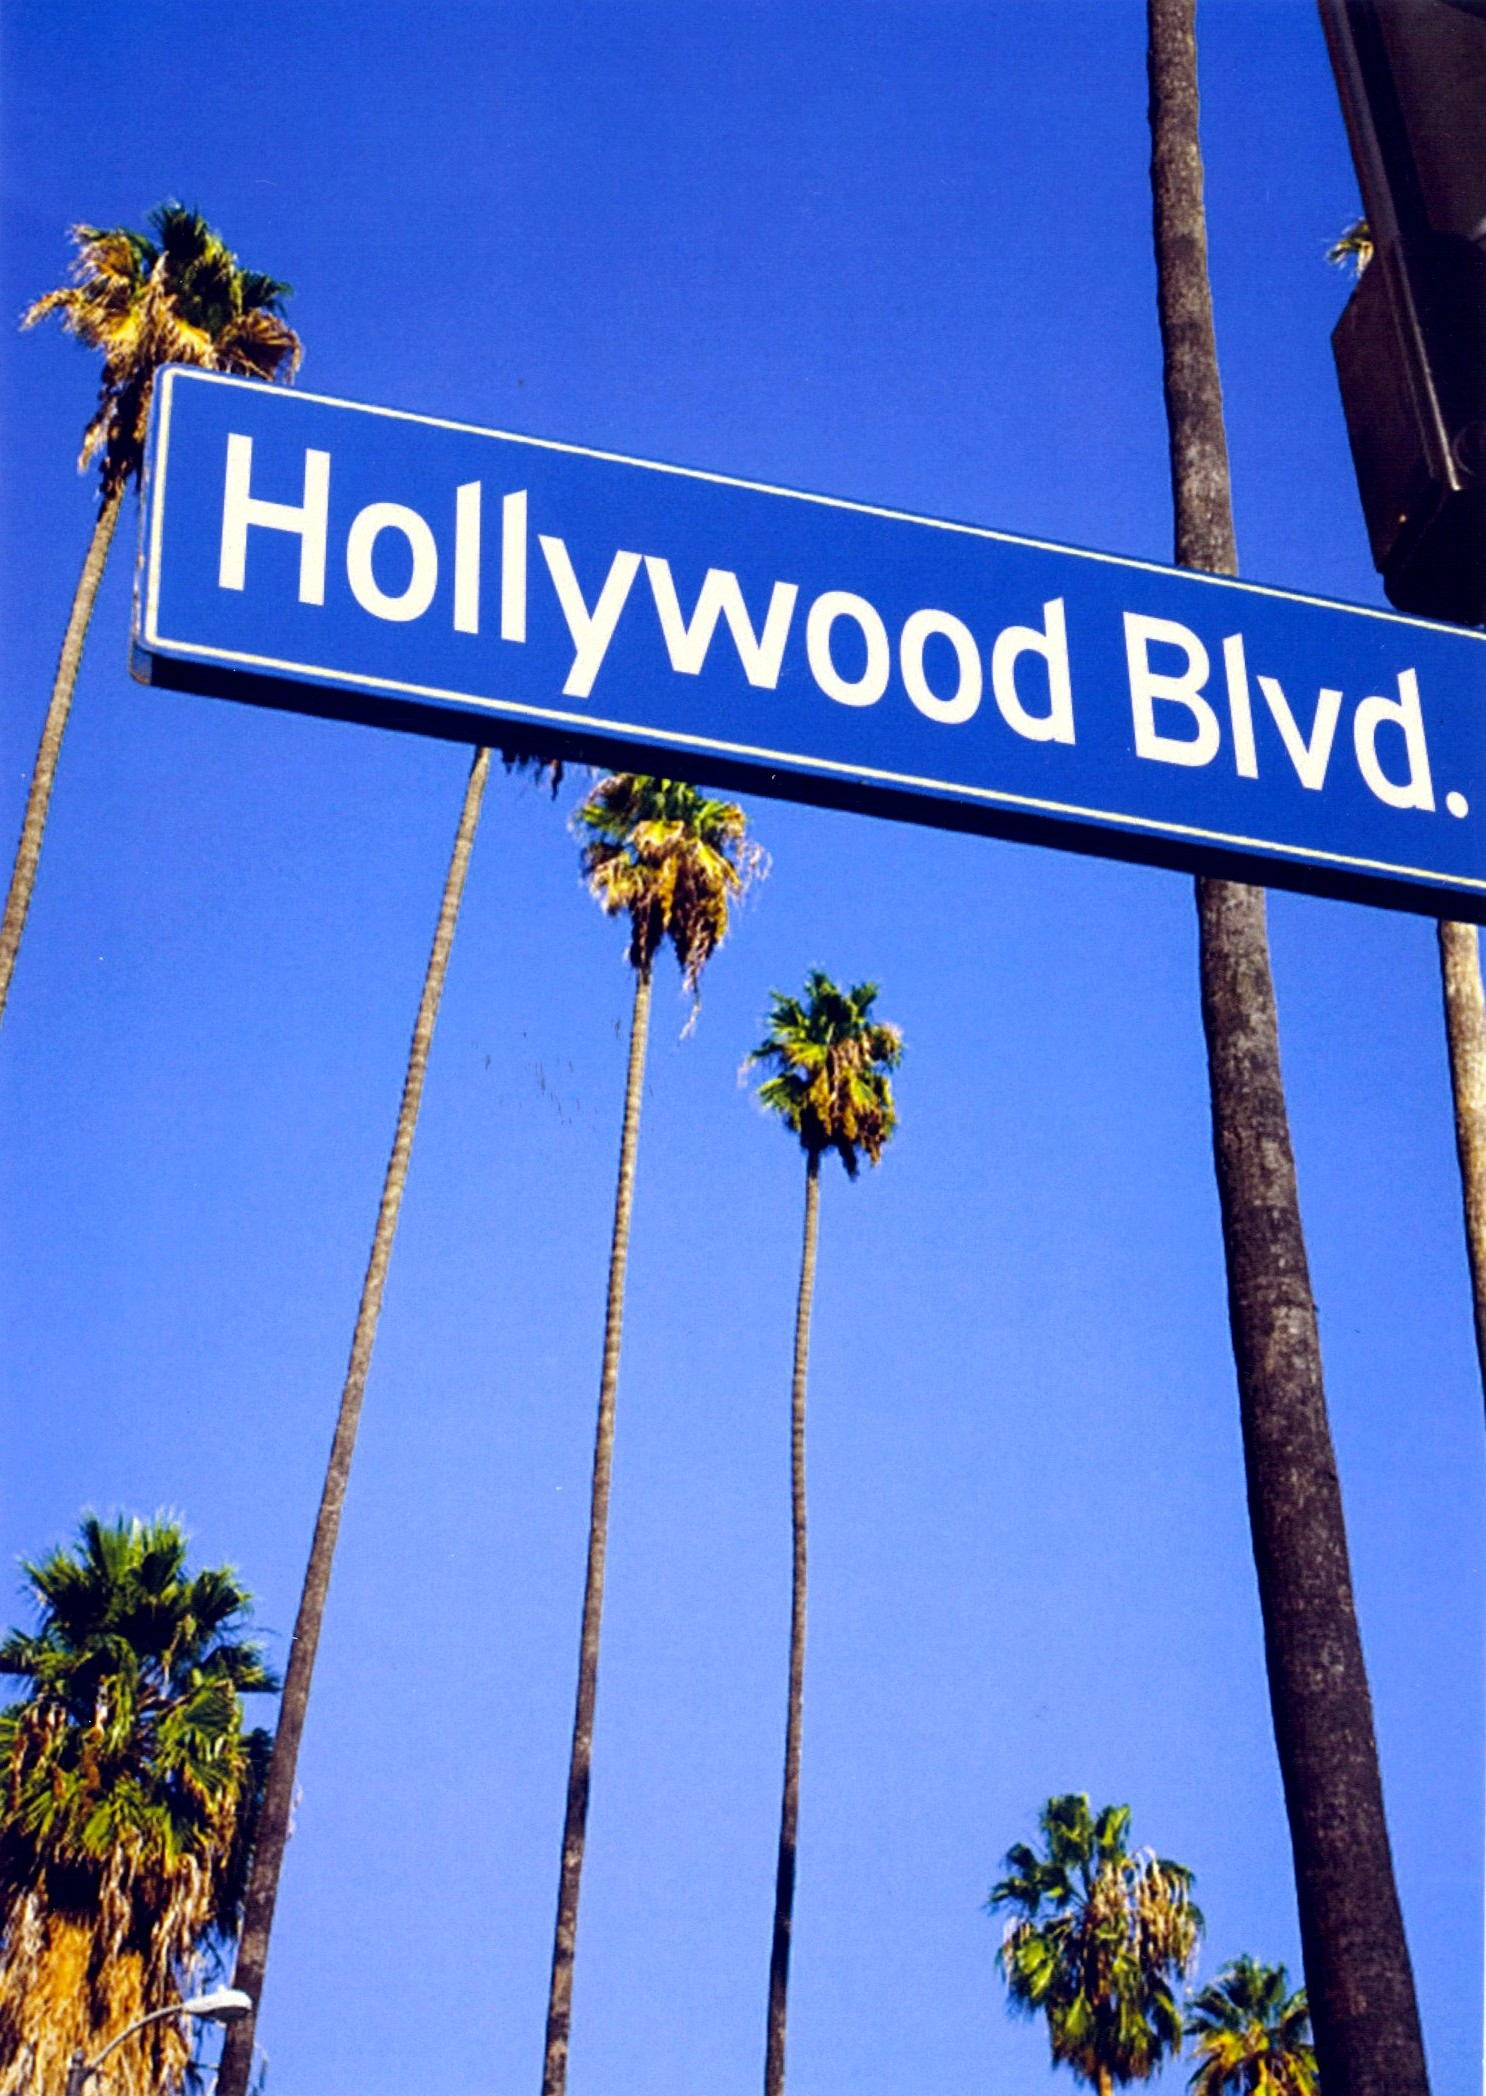 hollywood blvd sign with palm trees